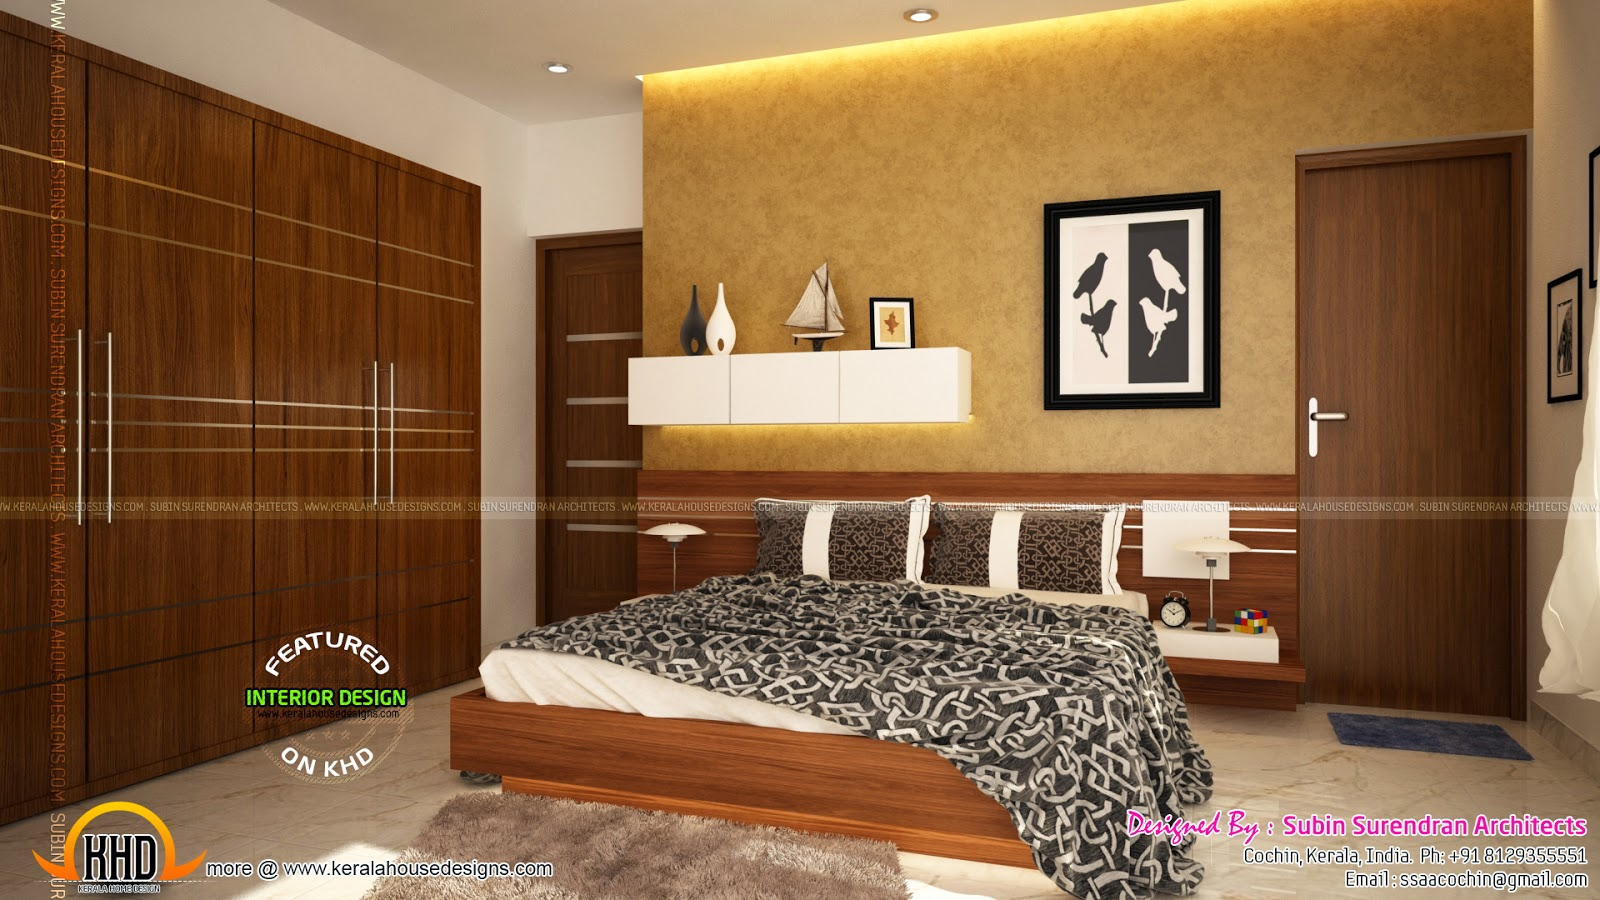 Interior design cochin kerala home design and floor plans for Kerala homes interior designs